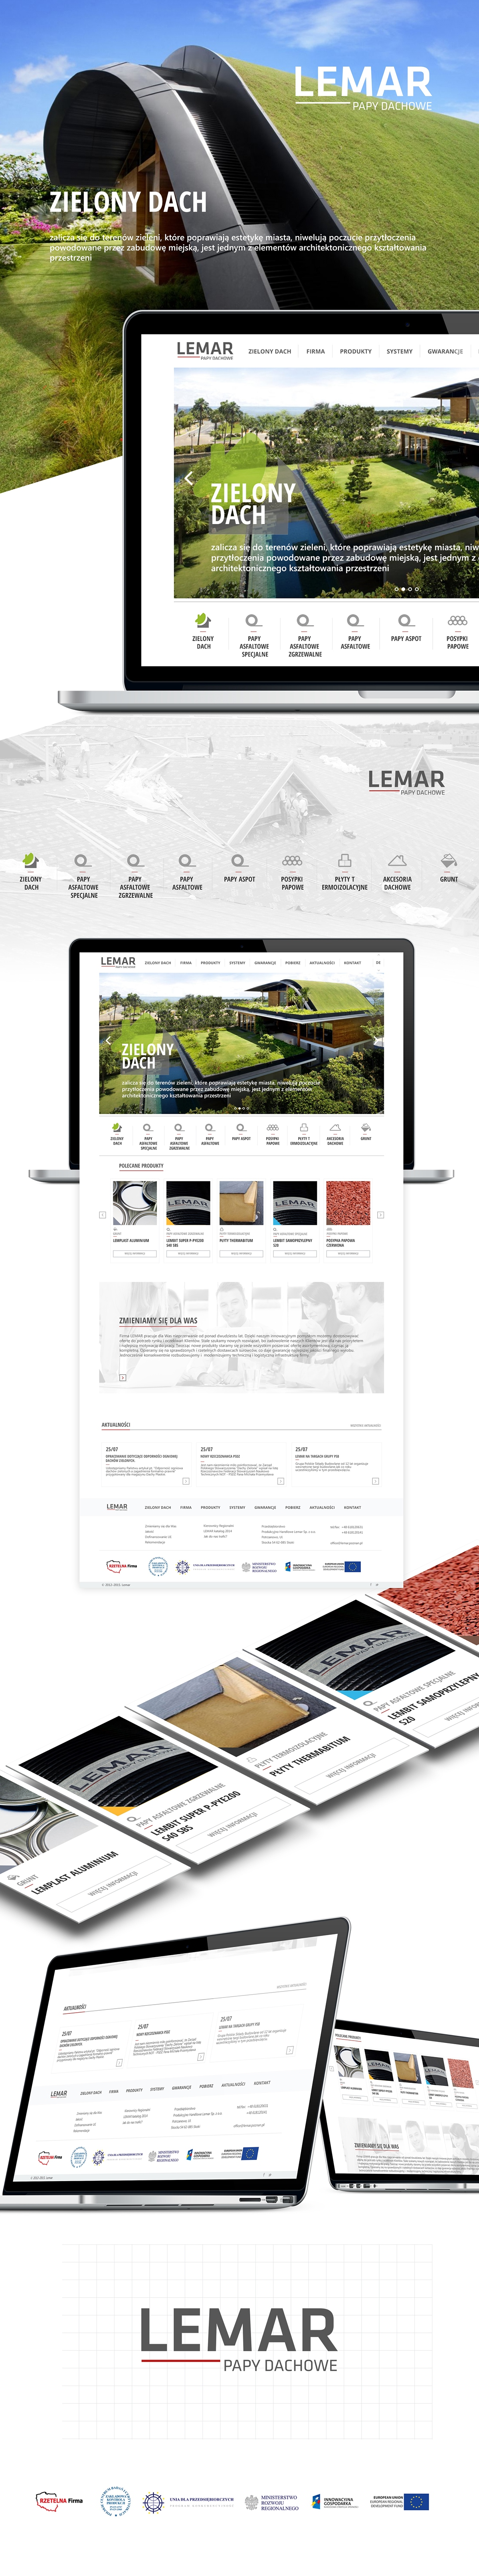 Webdesign Product Exposition